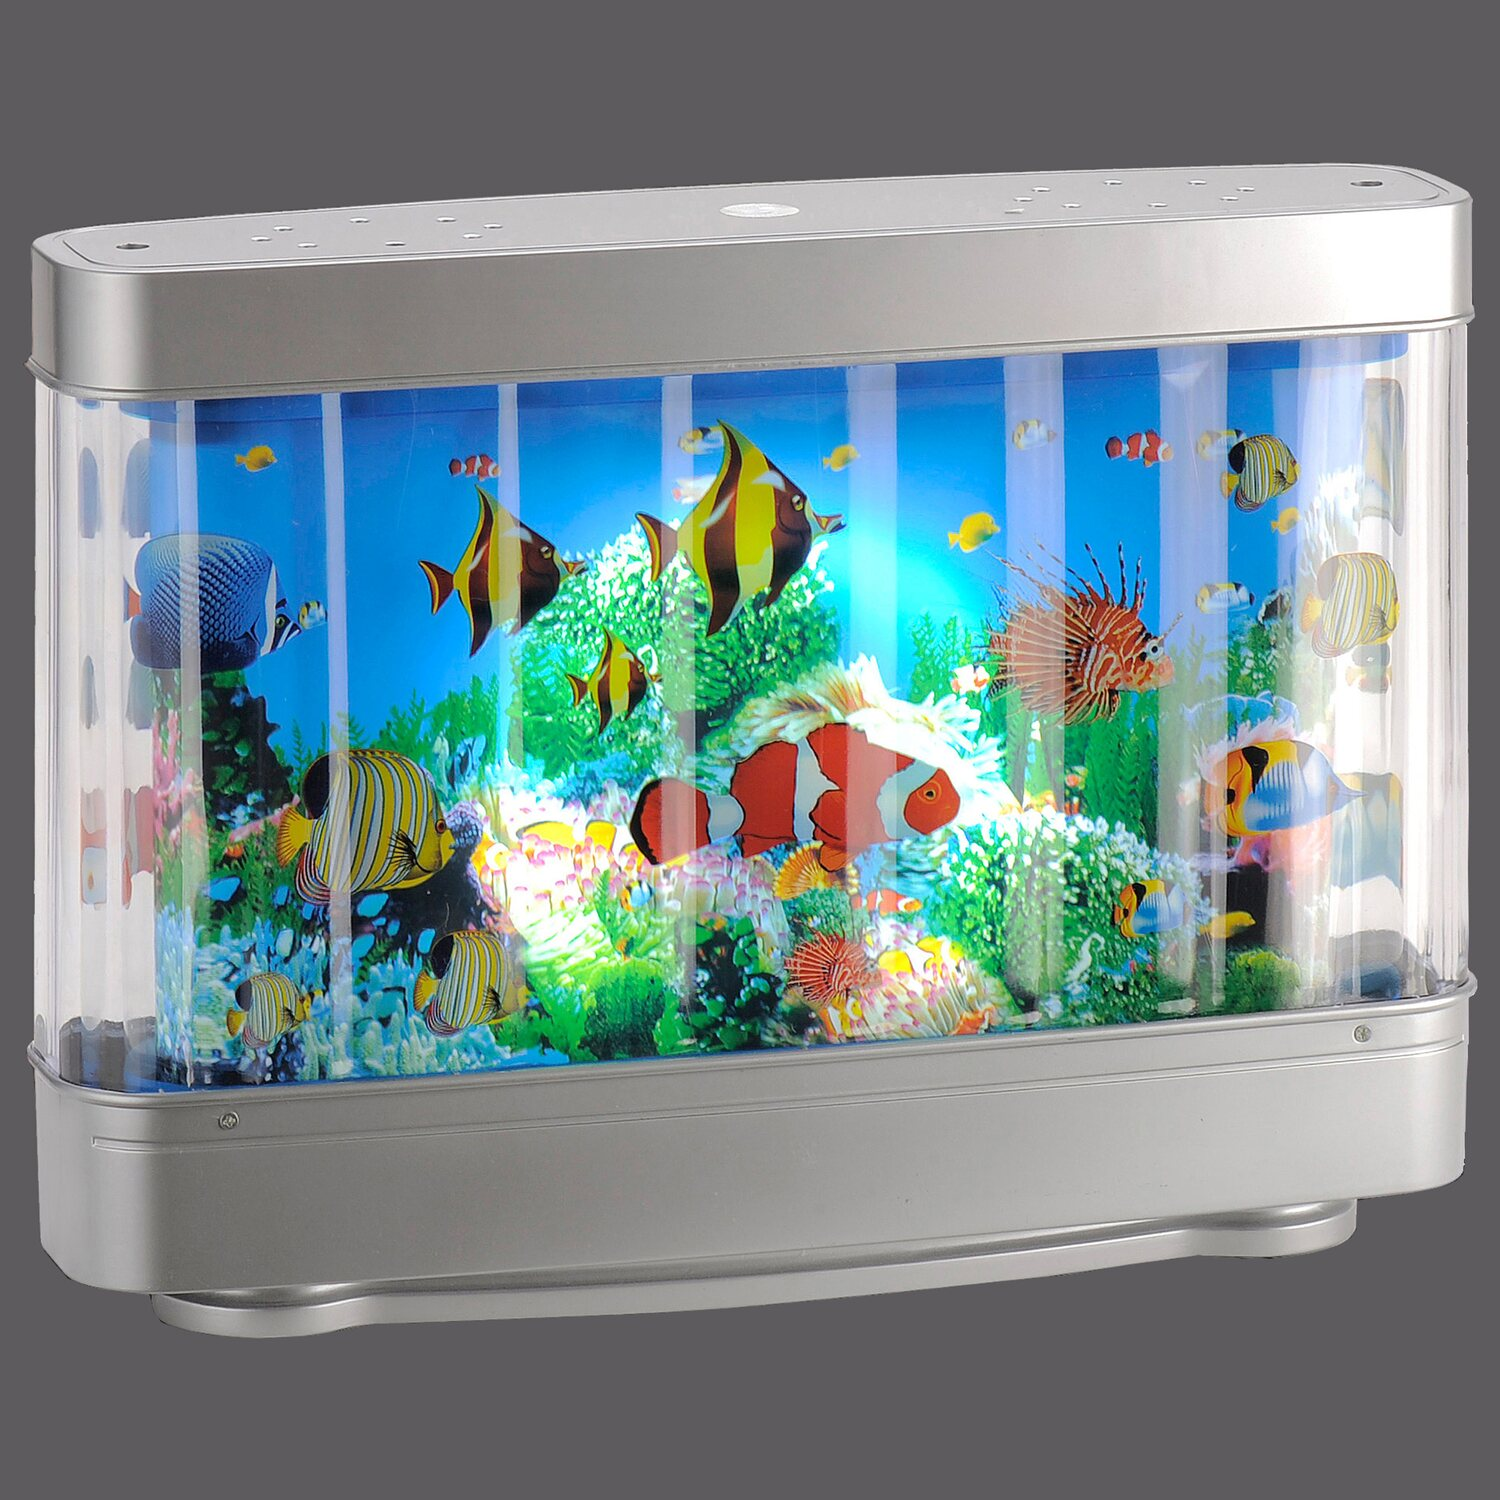 led tischleuchte aquarium silber eek a kaufen bei obi. Black Bedroom Furniture Sets. Home Design Ideas